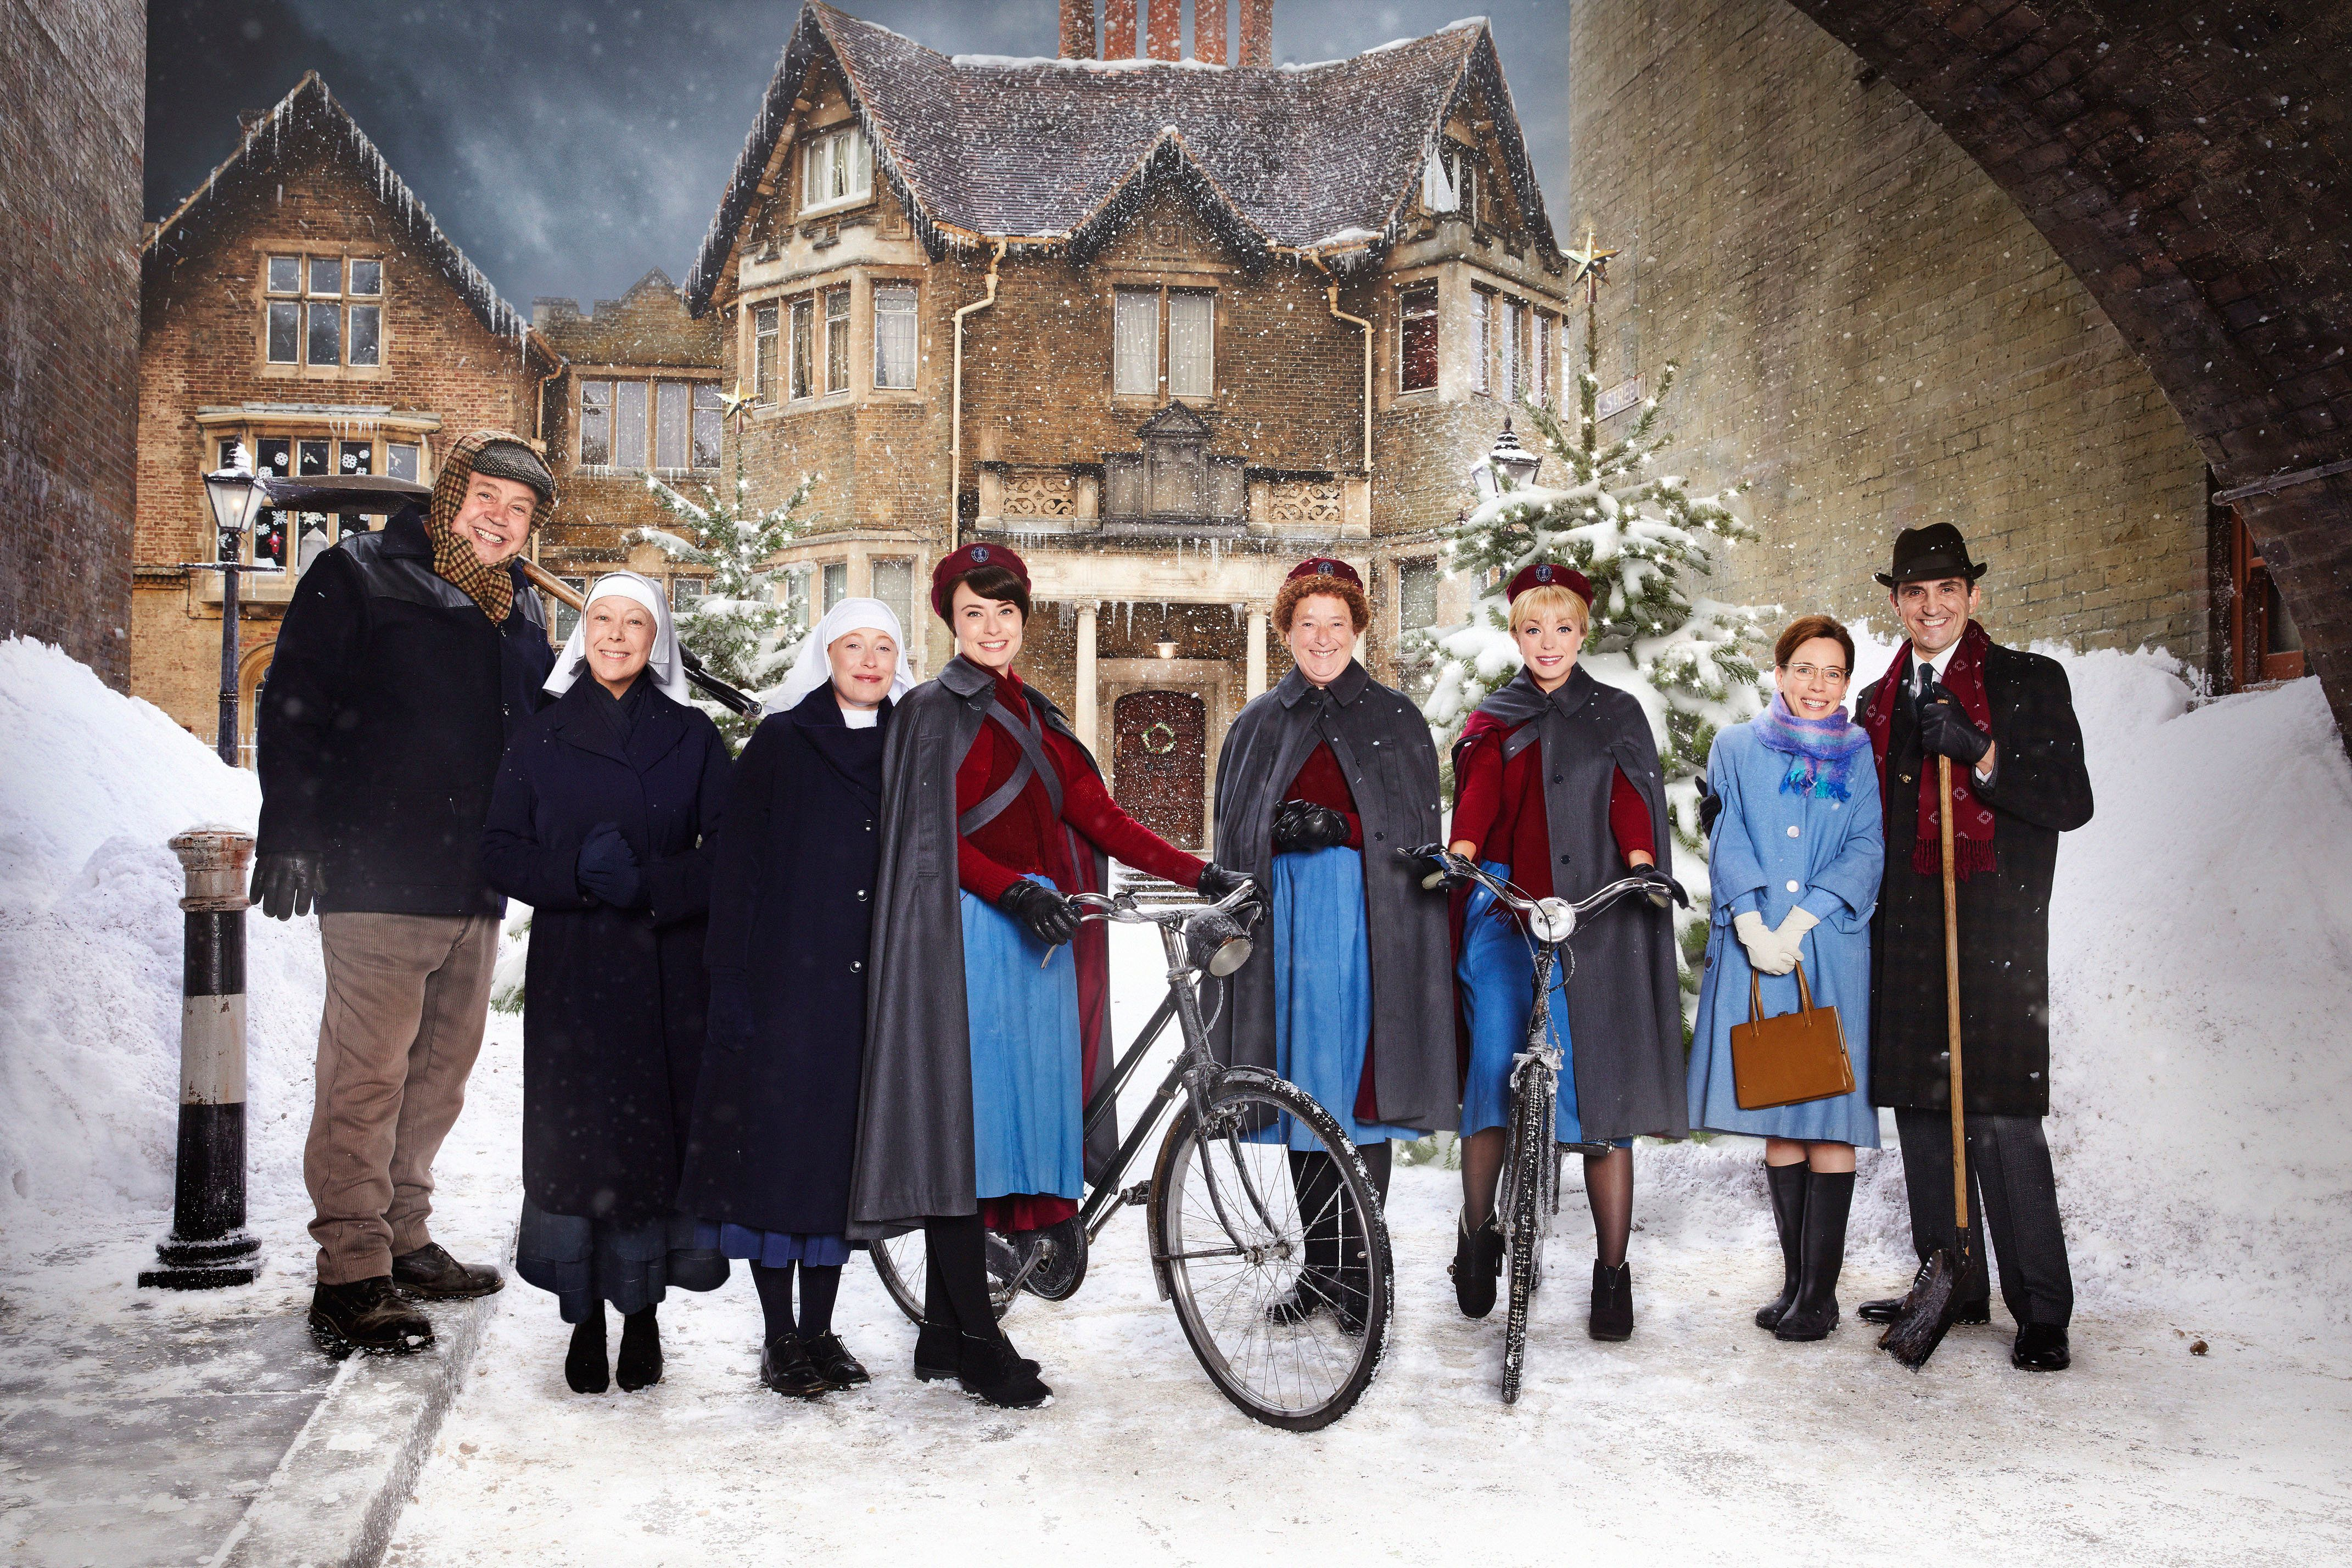 'Call The Midwife' also came out on top in